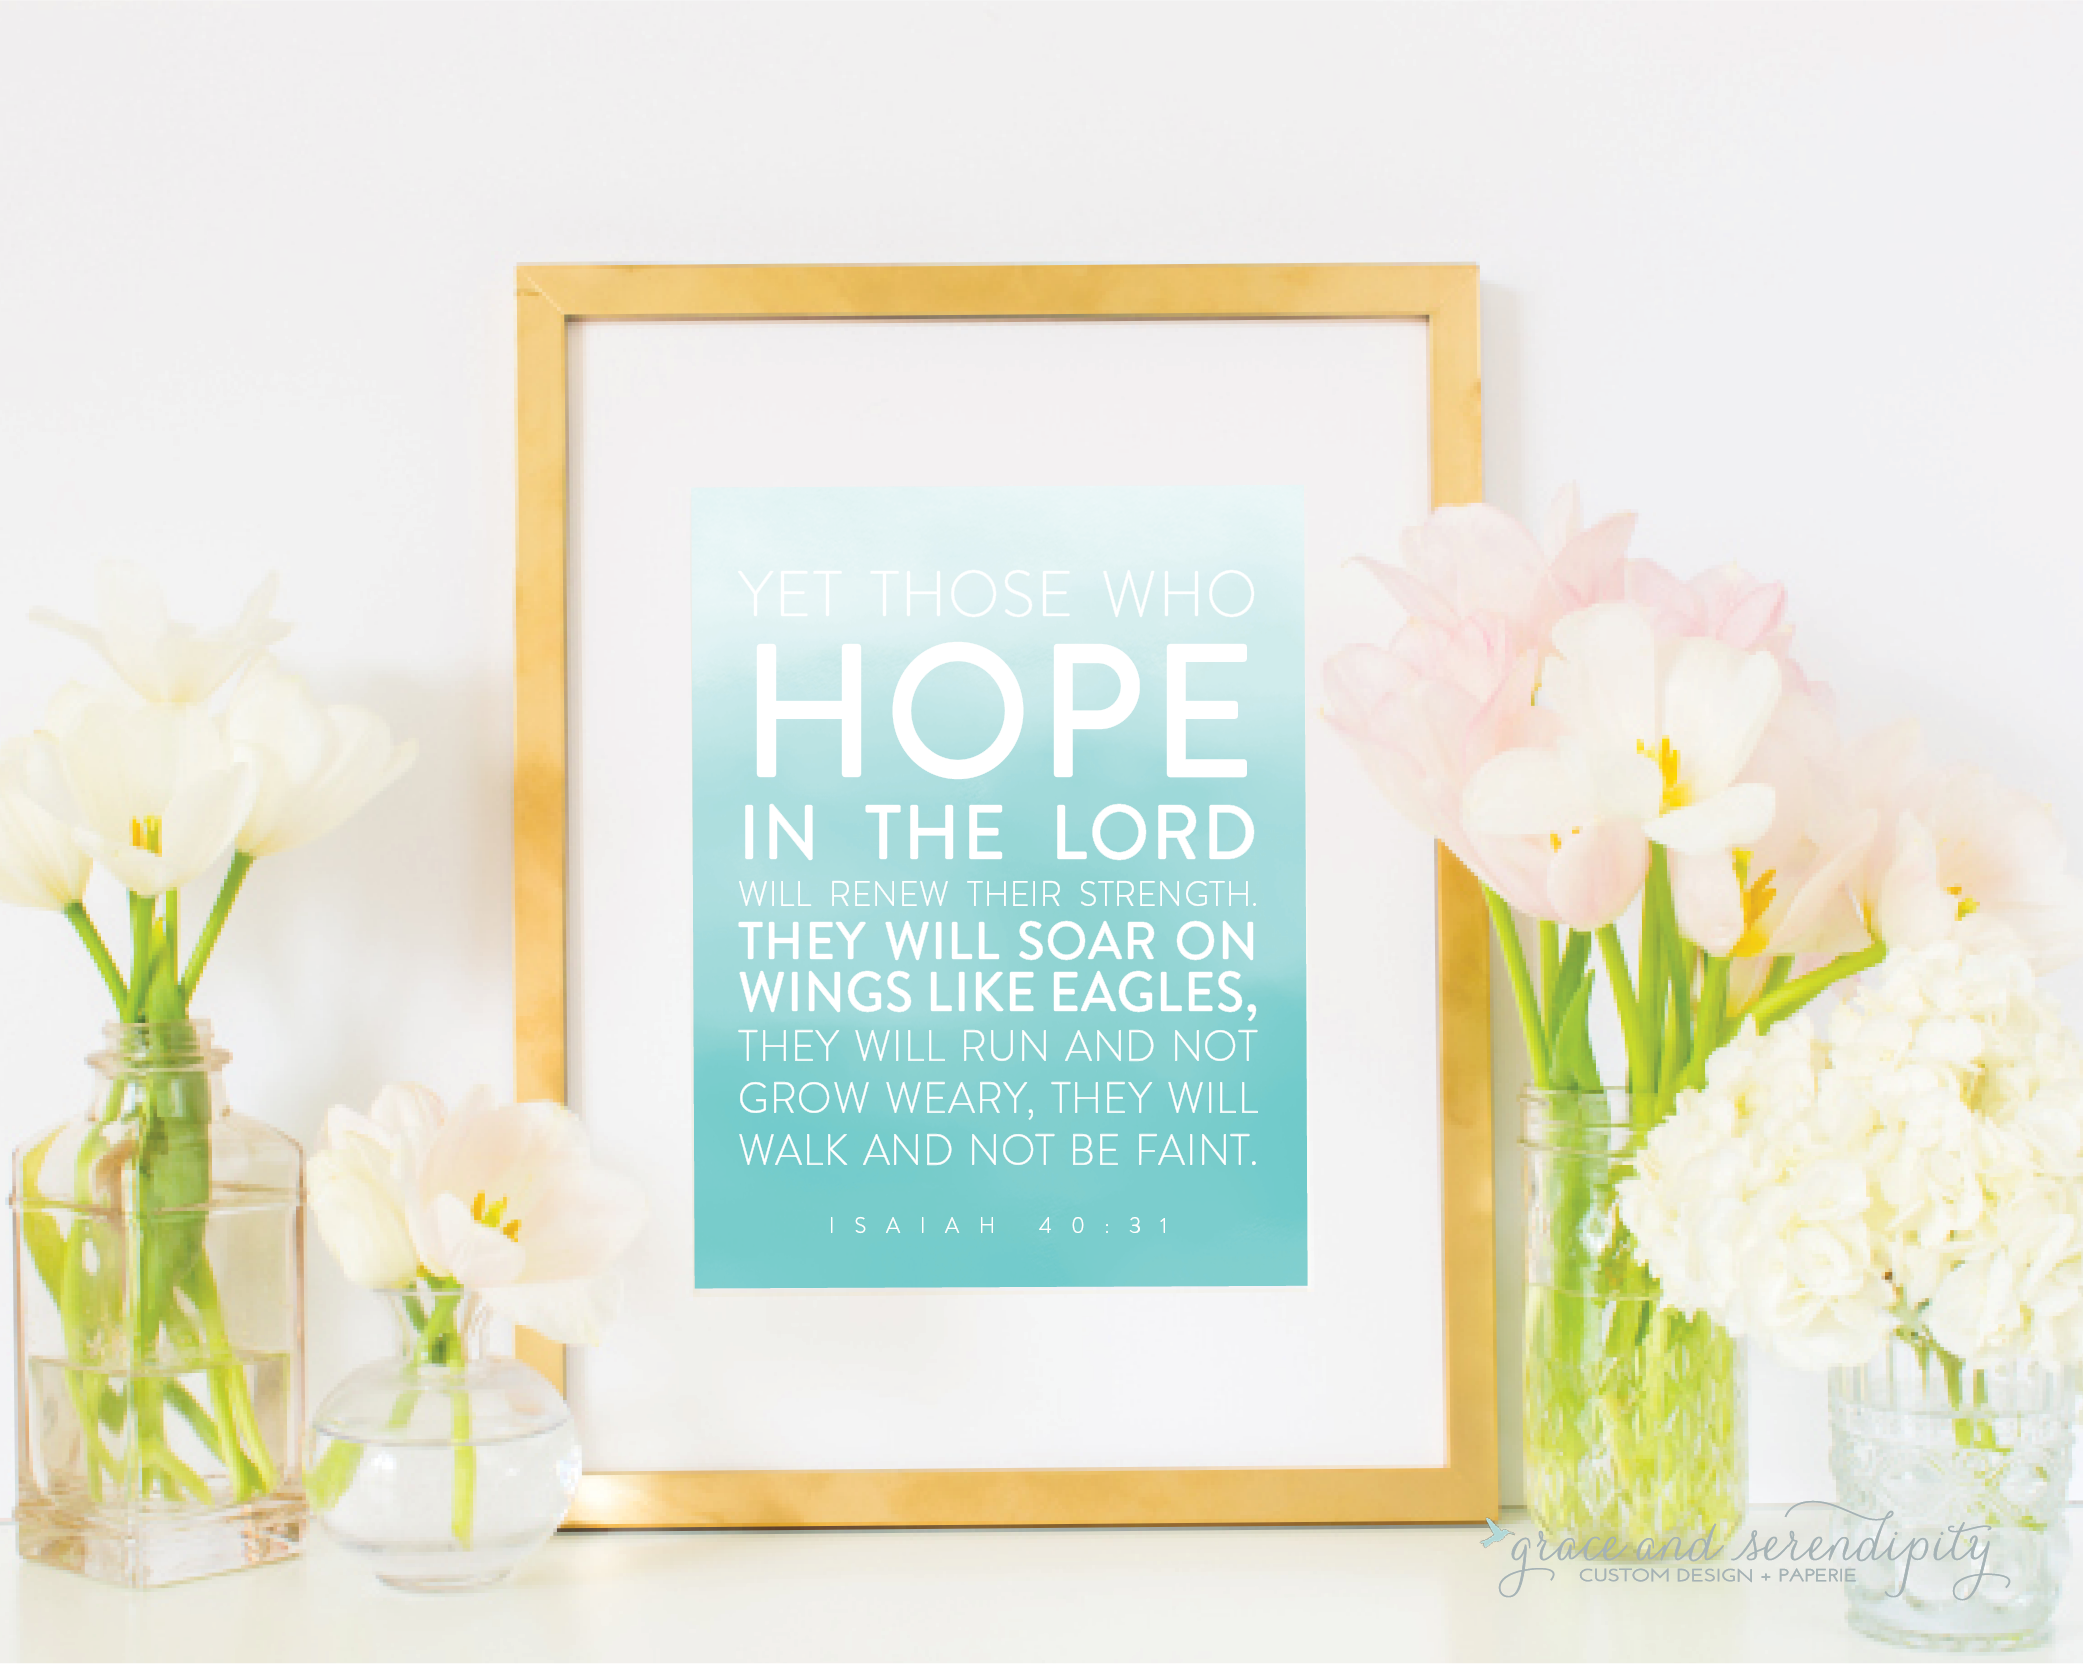 gs - hope in the lord watercolor print.png